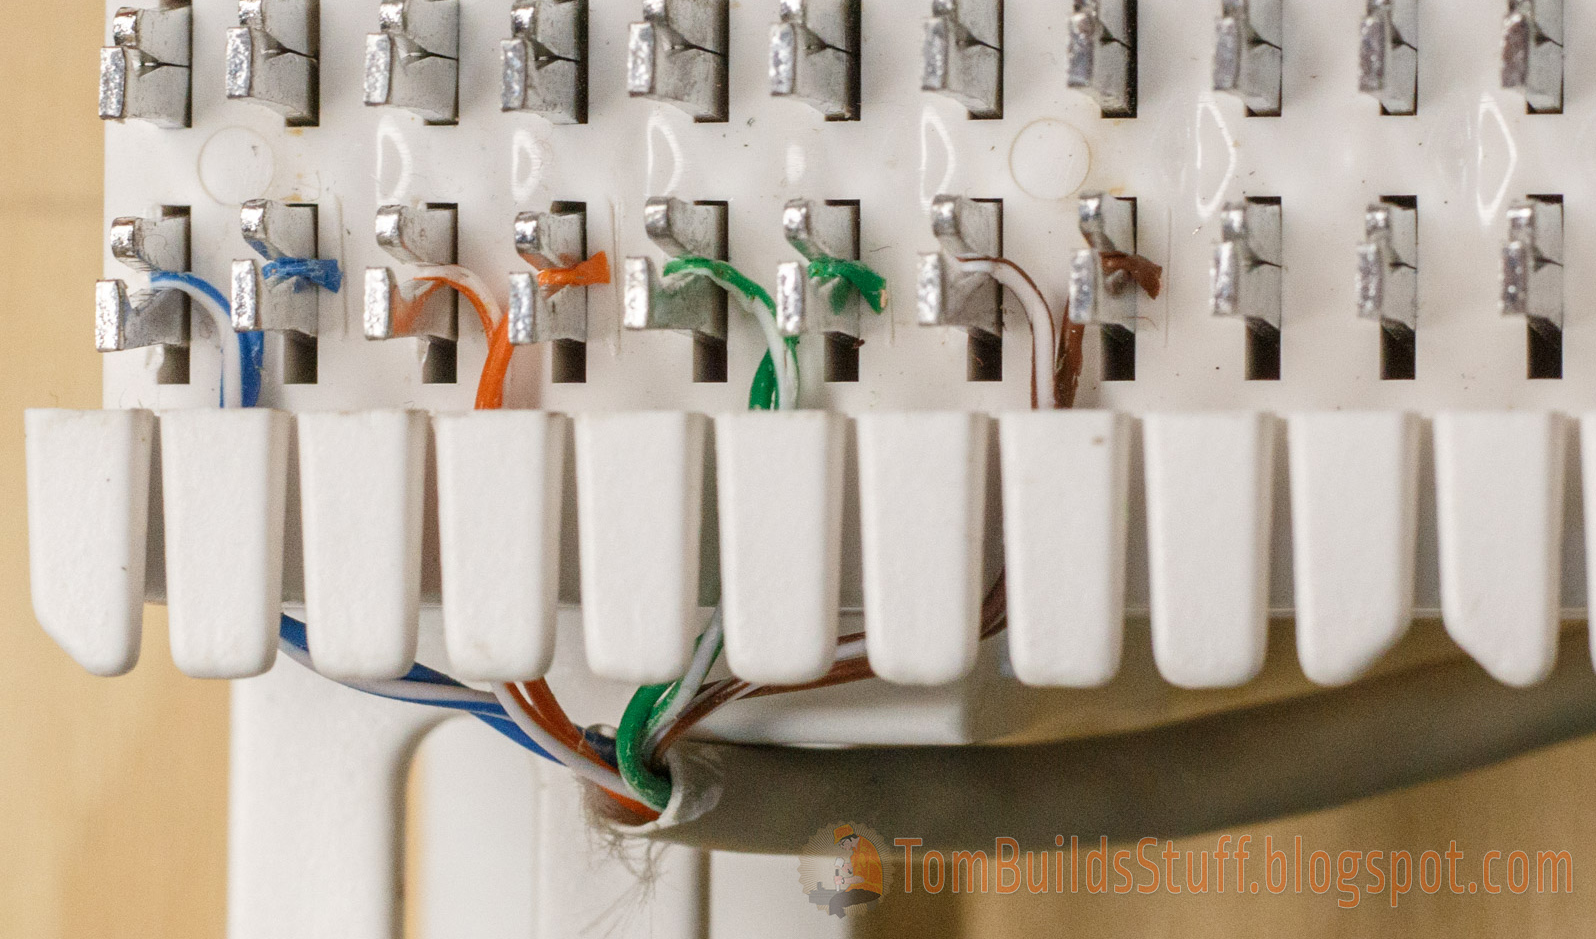 hight resolution of the order of wires is white blue blue white orange orange white green green white brown brown it s easier for me to just remember blue orange